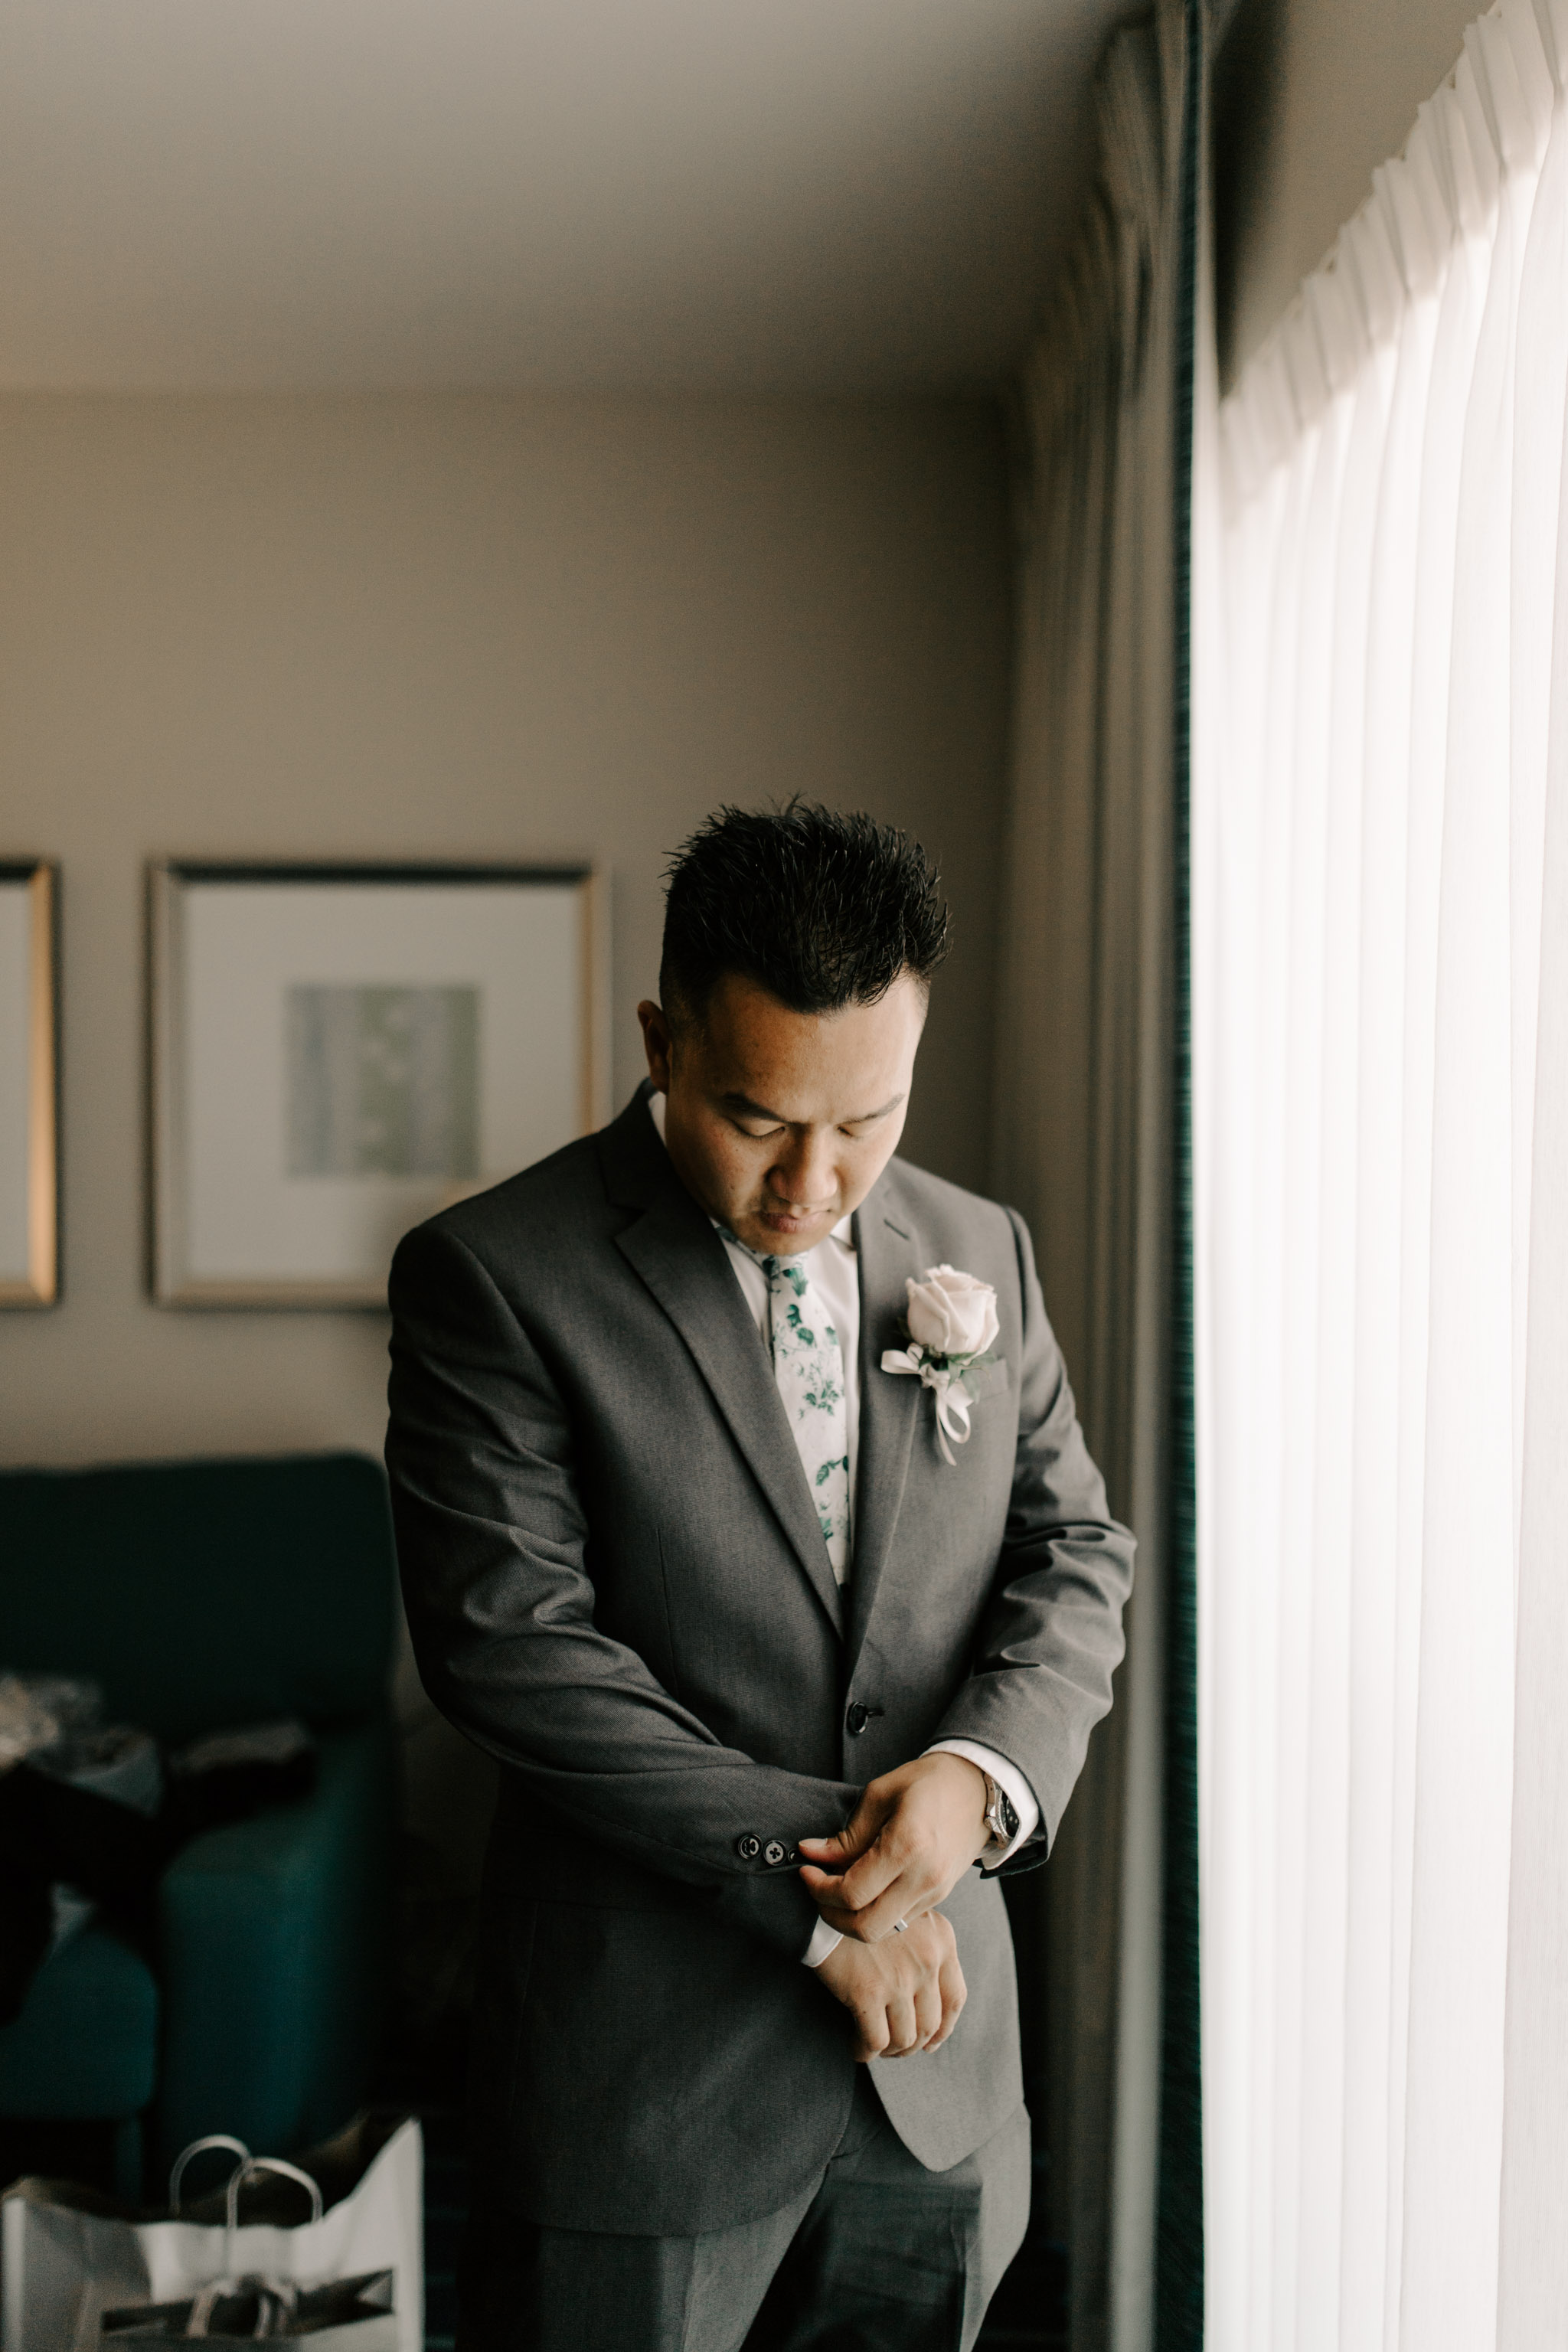 53 By The Sea Hawaii Wedding By Oahu Wedding Photographer Desiree Leilani (1 of 1)-50.jpg